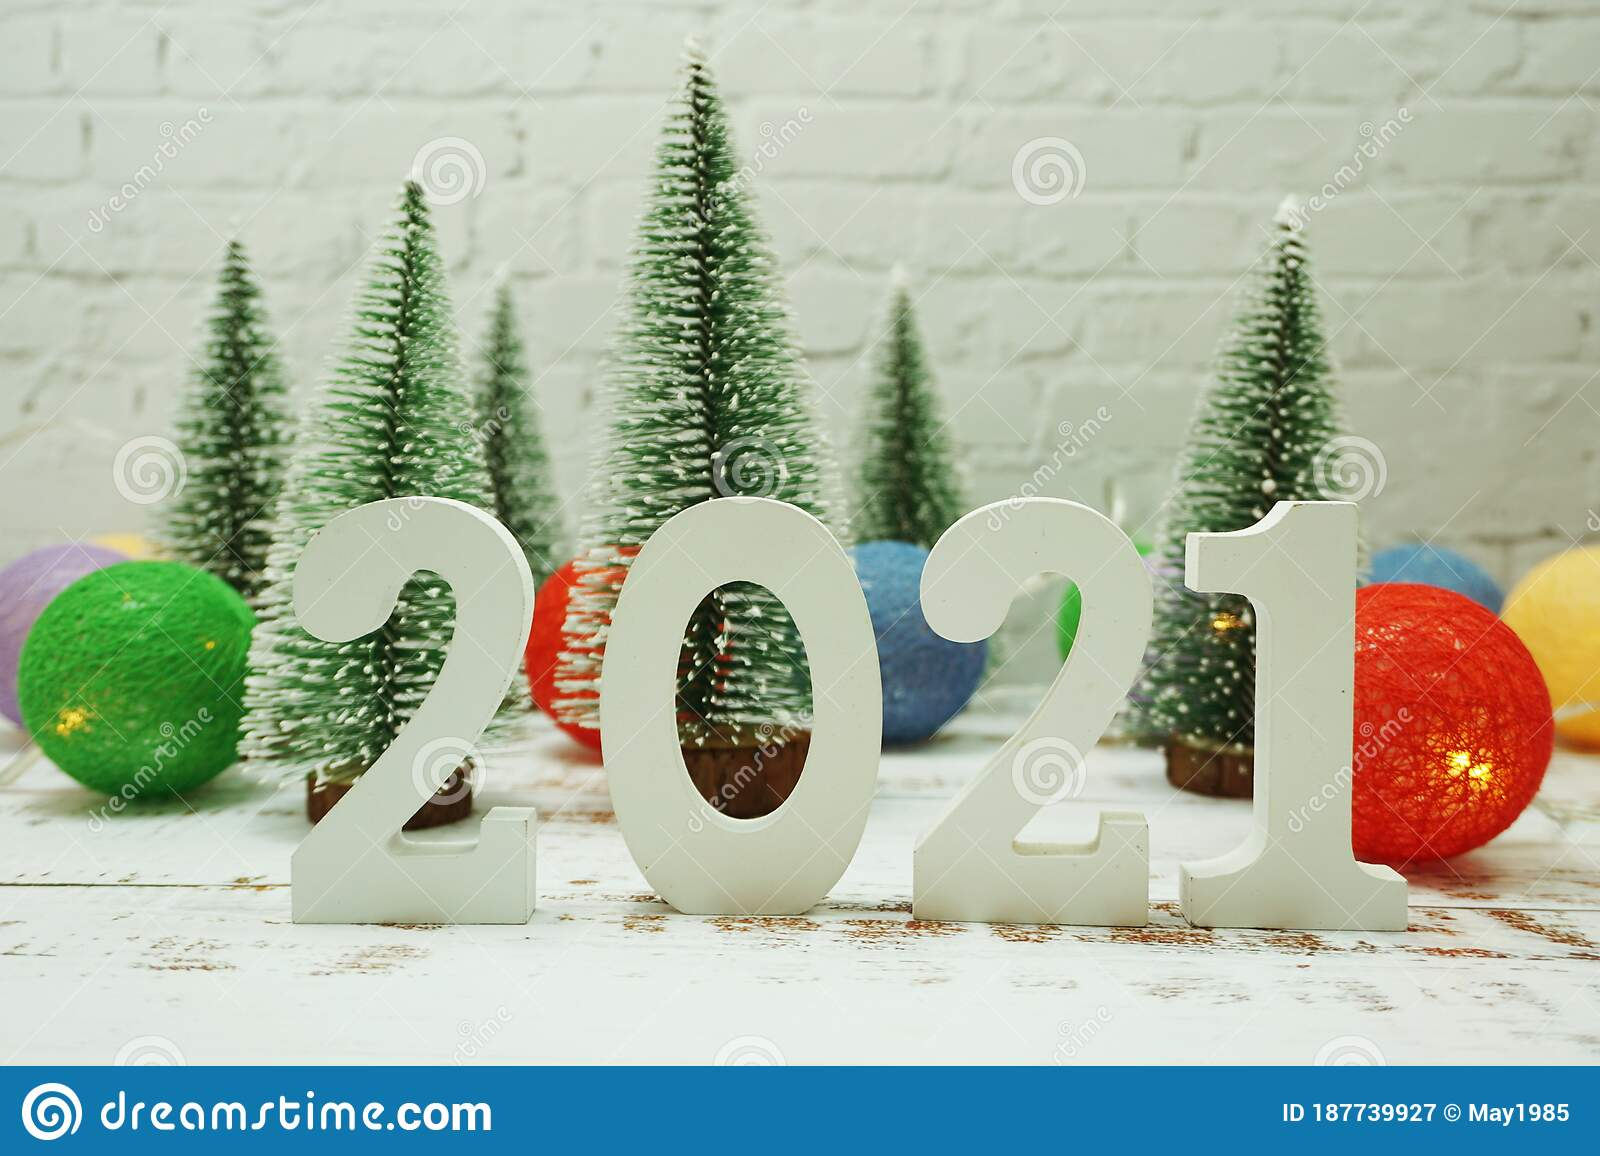 2021 Christmas White Background Happy New Year 2021 Festive Background With Christmas Tree On White Brick Wall Background Stock Image Image Of Winter Design 187739927